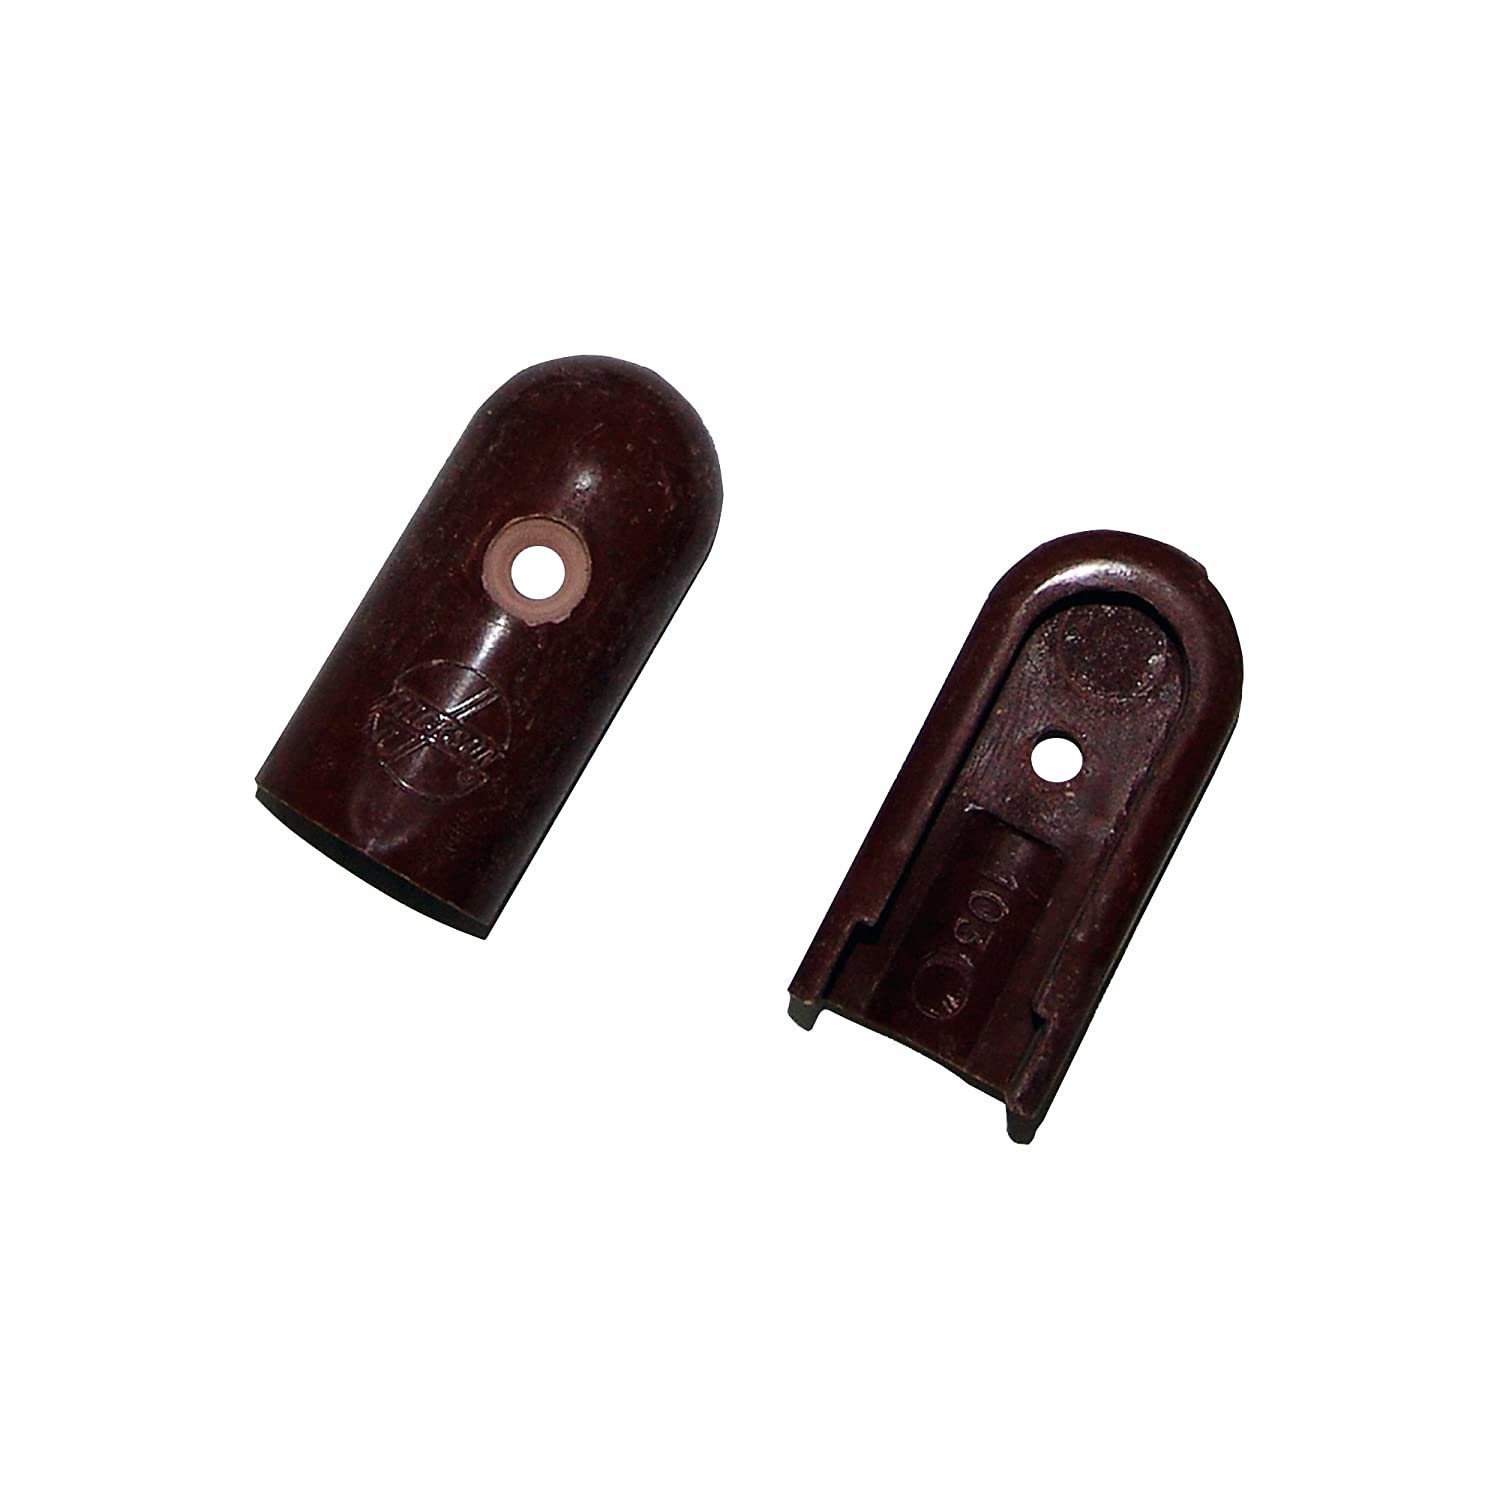 70% OFF Outlet Jackson Safety Replacement 103 Insulator Courier shipping free shipping Electr JH-2 for Welding